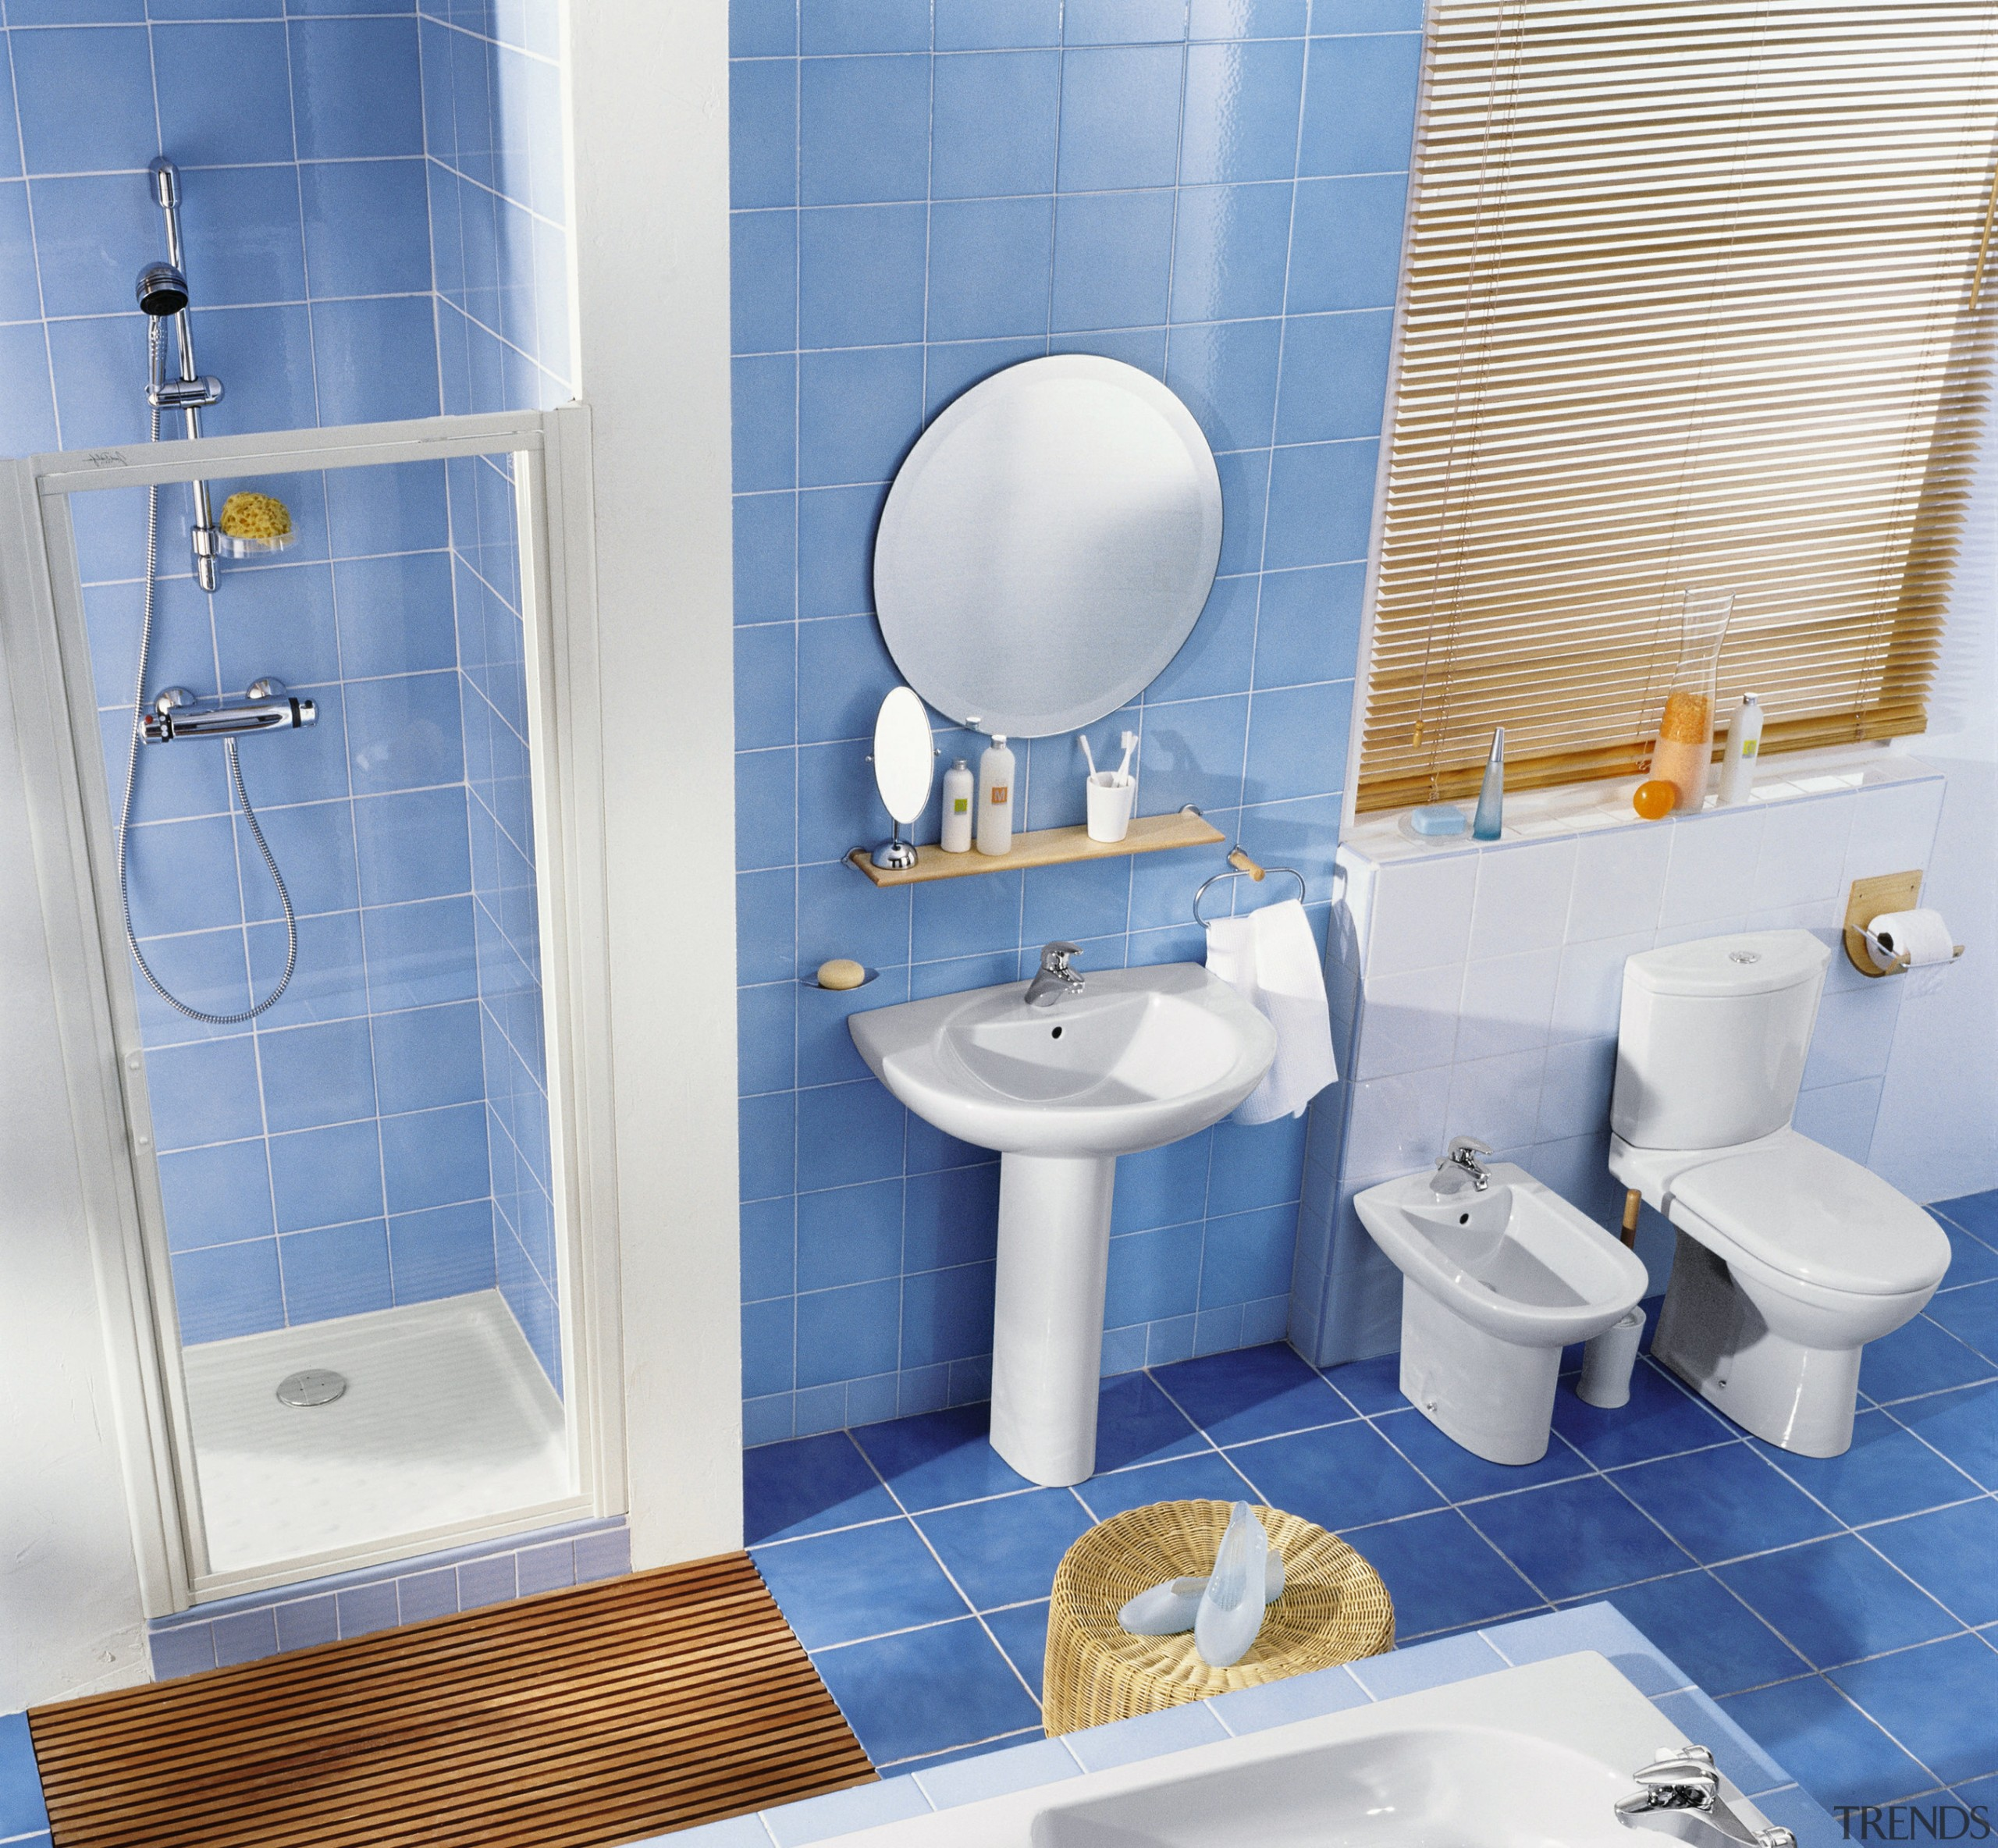 Bathroom with blue floor and wall tiles, shower bathroom, blue, interior design, plumbing fixture, product, product design, room, tap, tile, toilet, toilet seat, teal, white